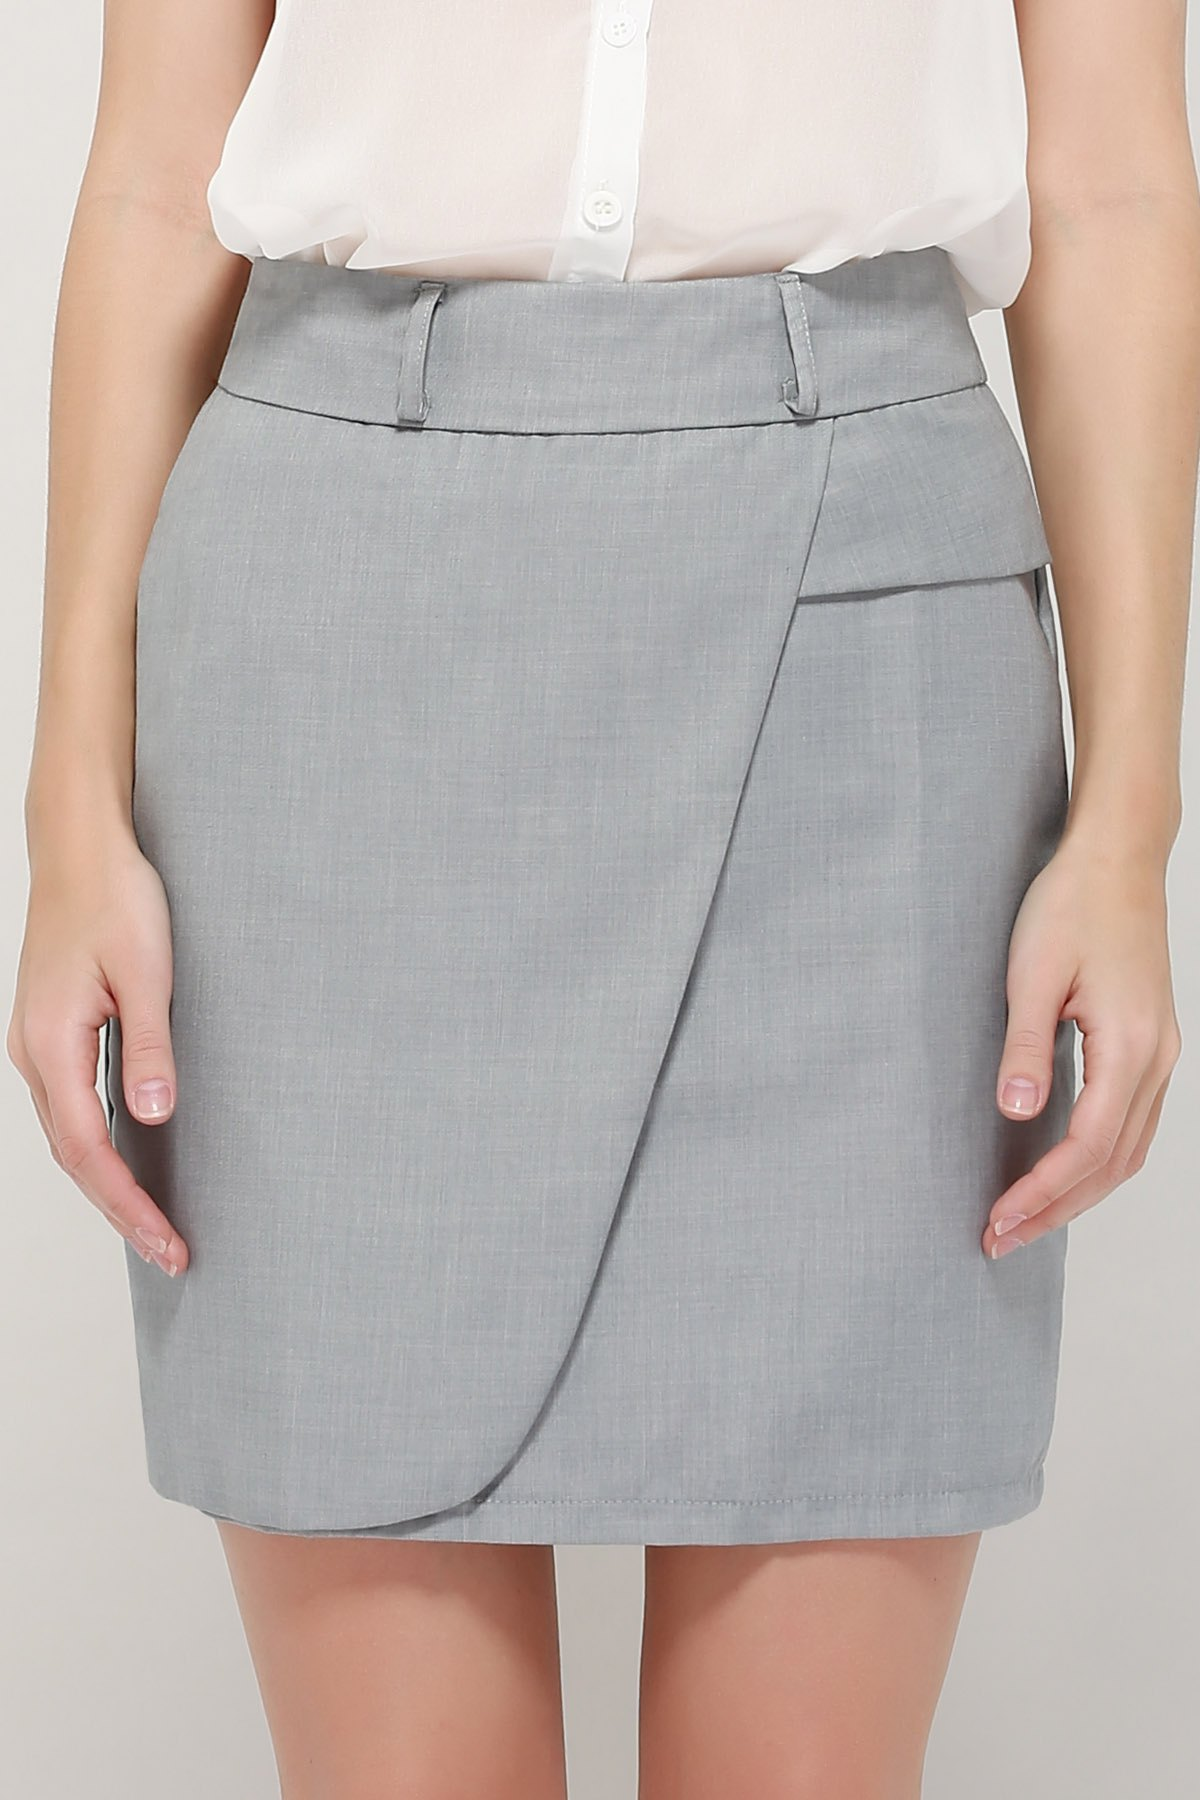 Latest Graceful OL Style Women's Pencil Skirt(With Belt)